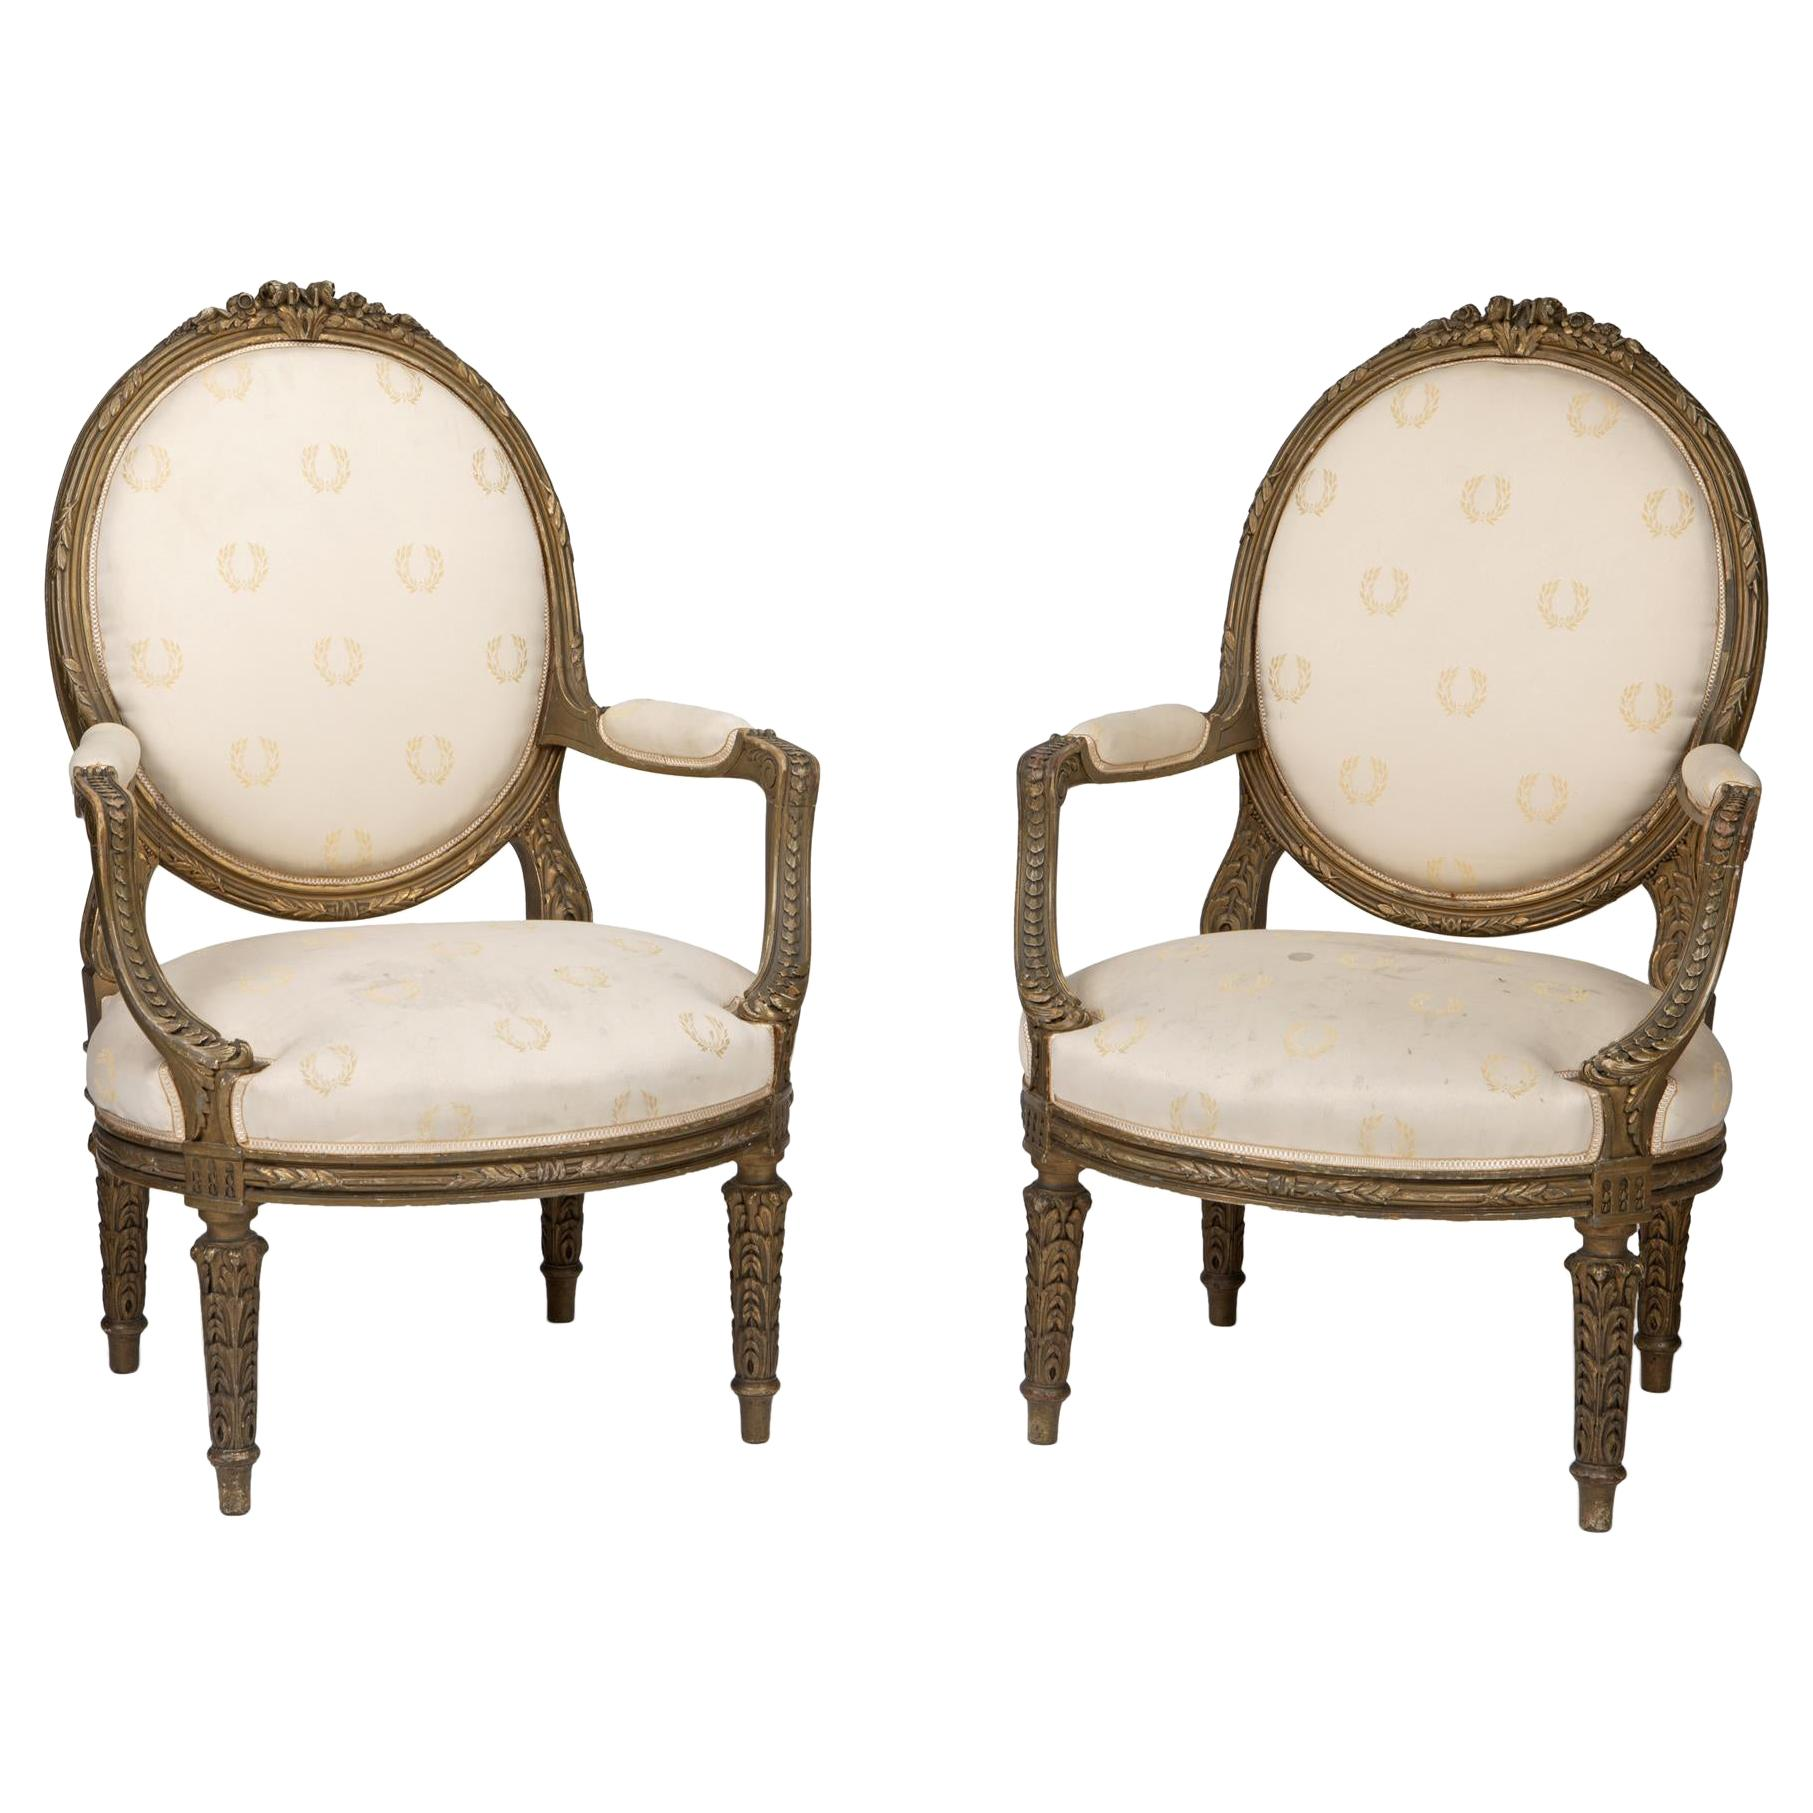 Pair of French Giltwood Armchairs, 19th Century